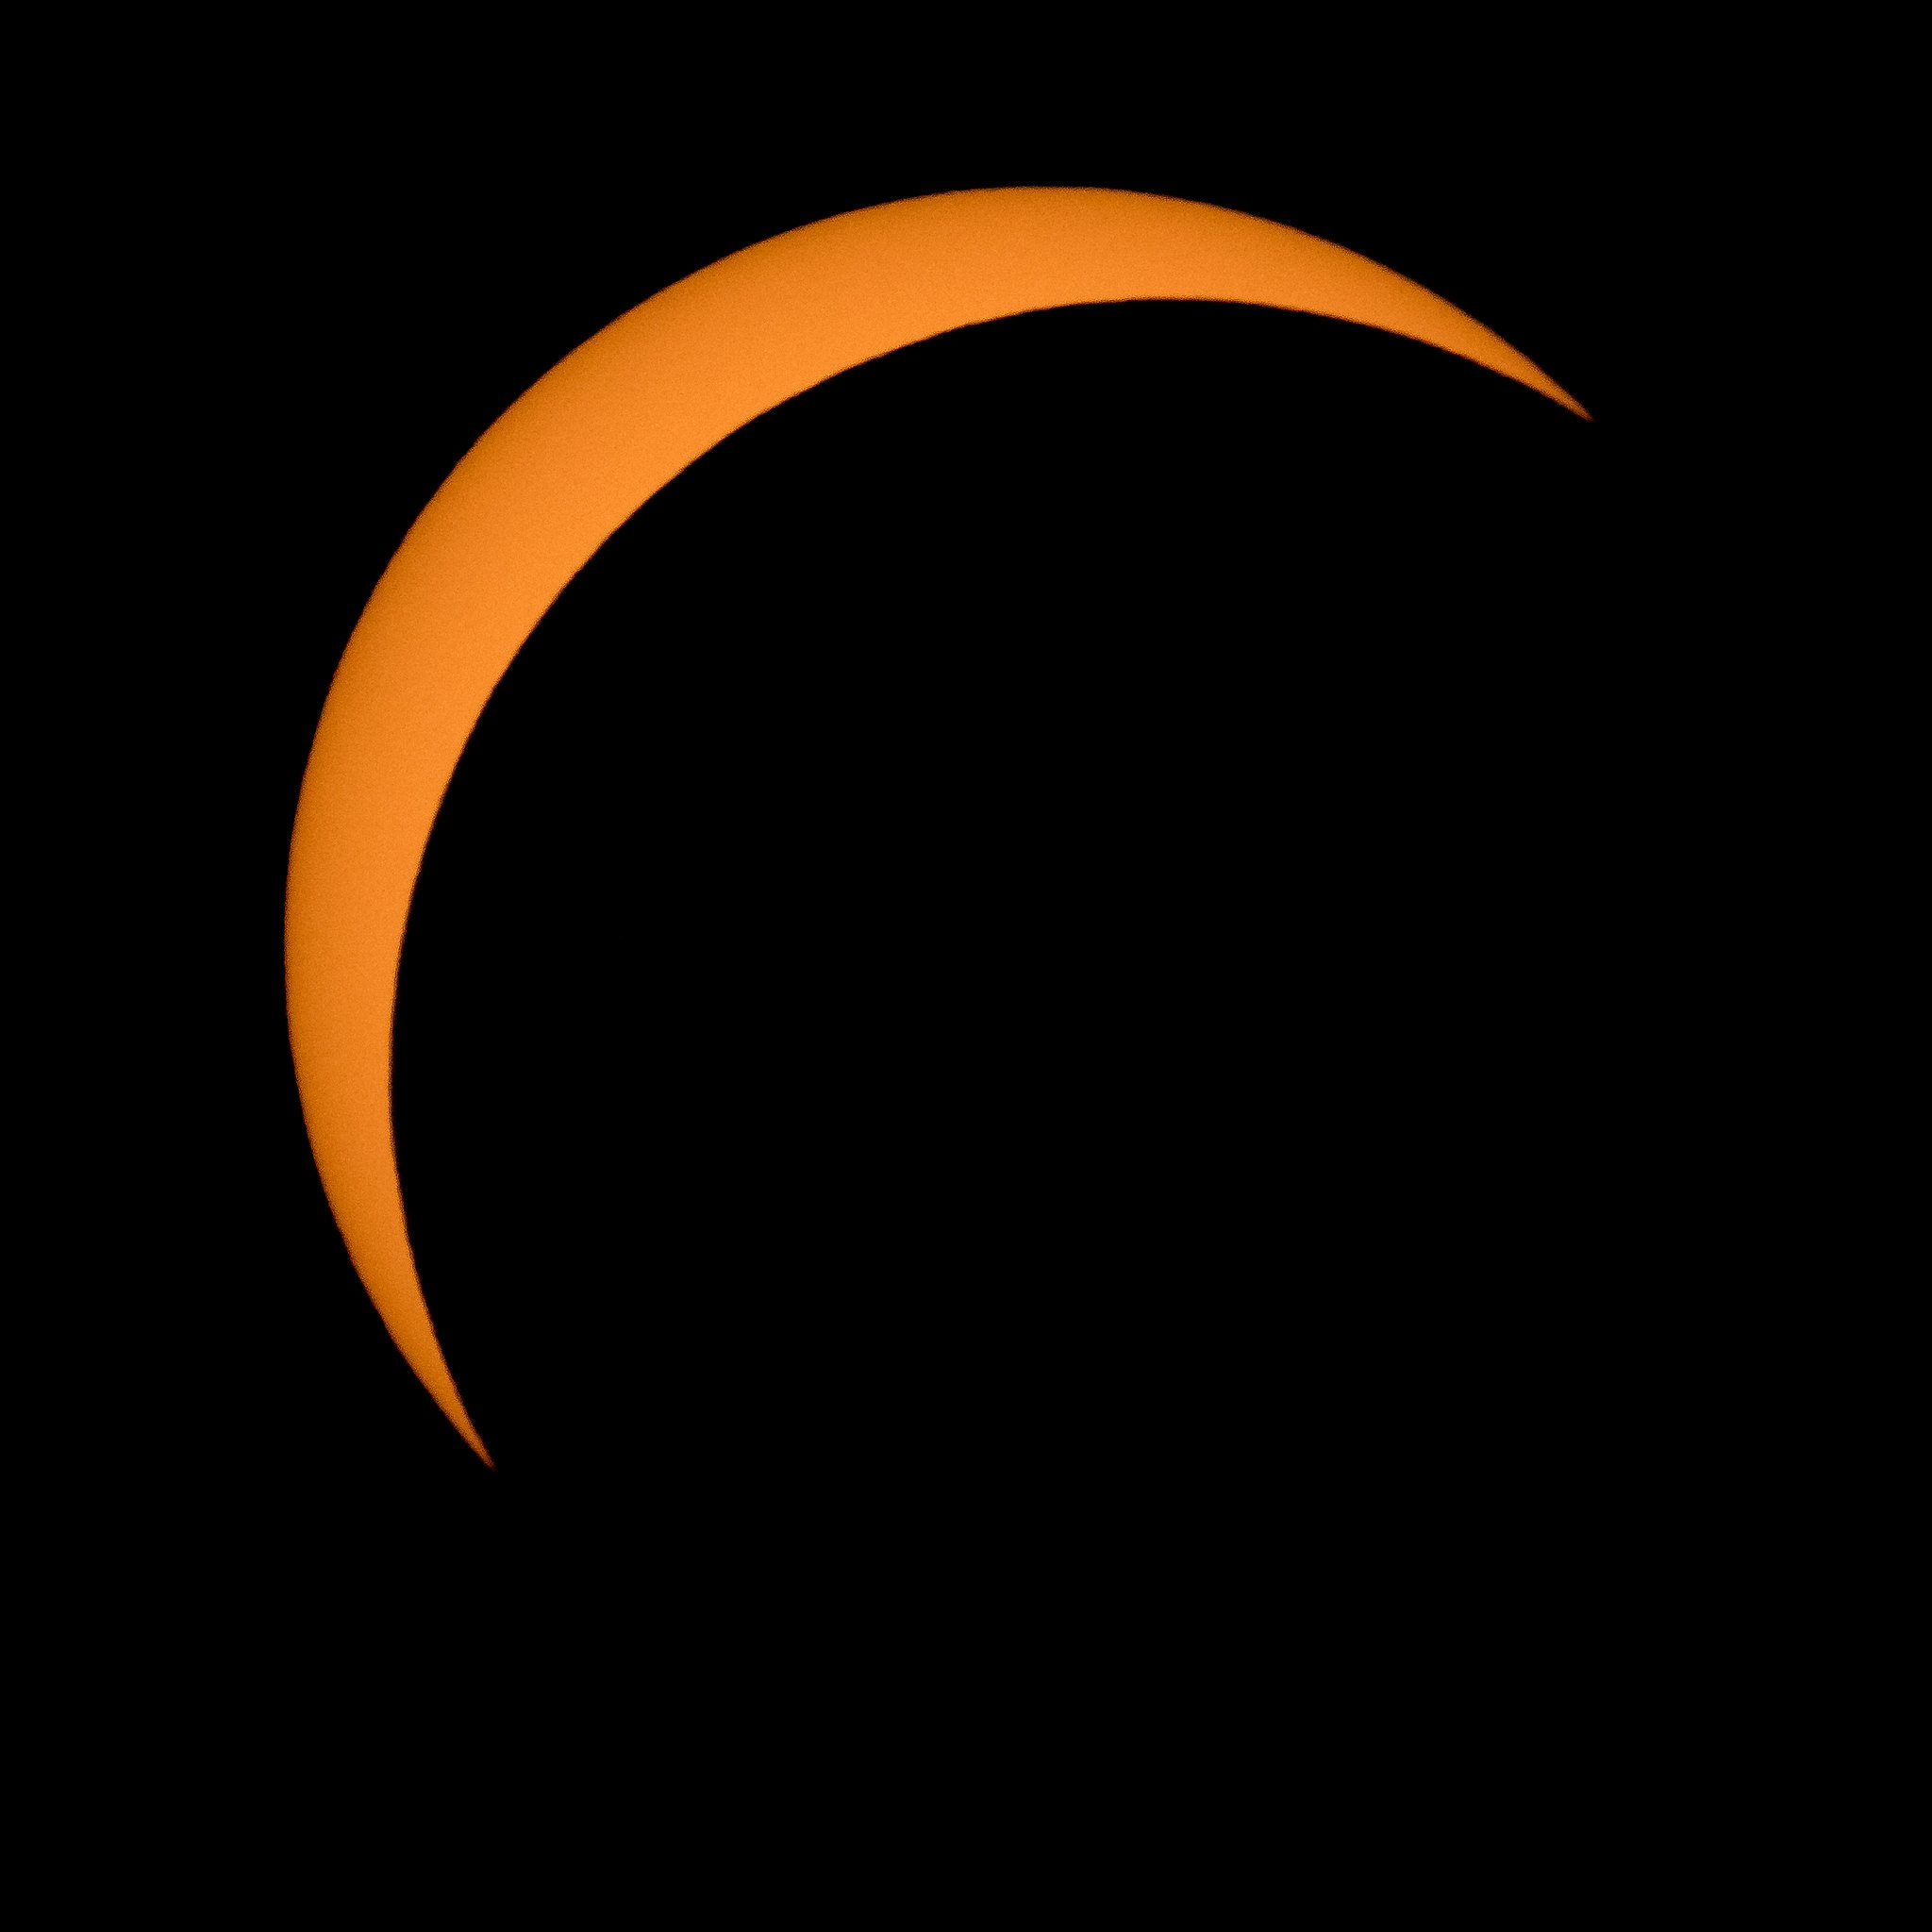 2017 Total Solar Eclipse (NHQ201708210303)